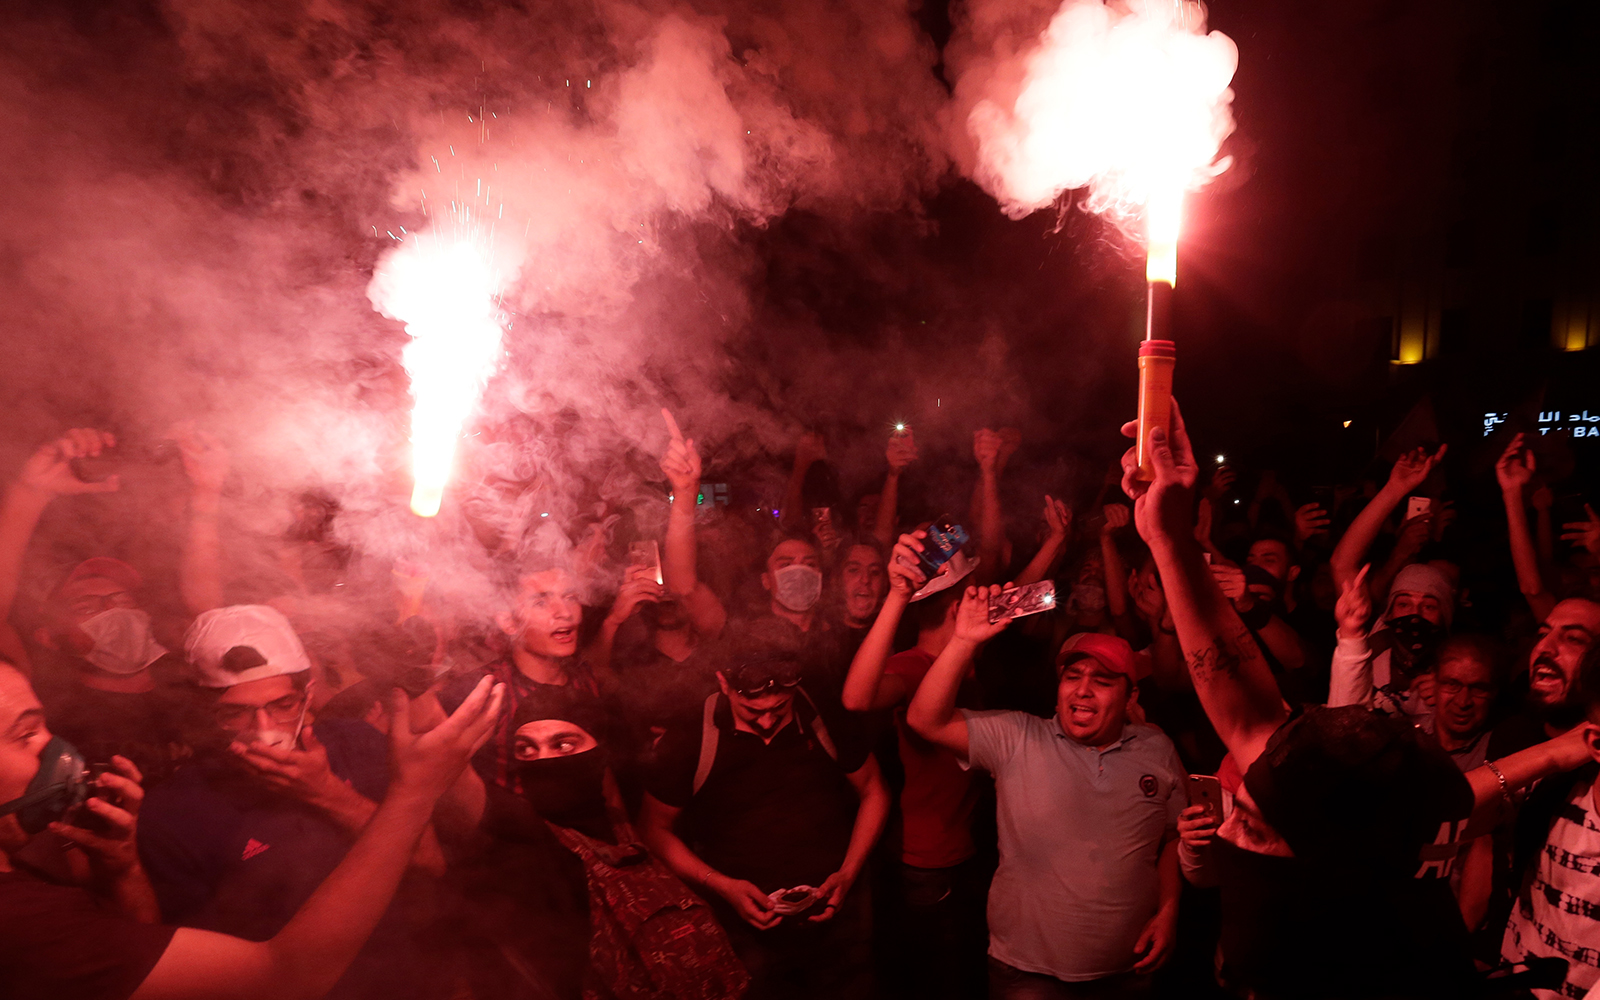 Lebanon rocked by vast protests demanding resignation of Hariri government